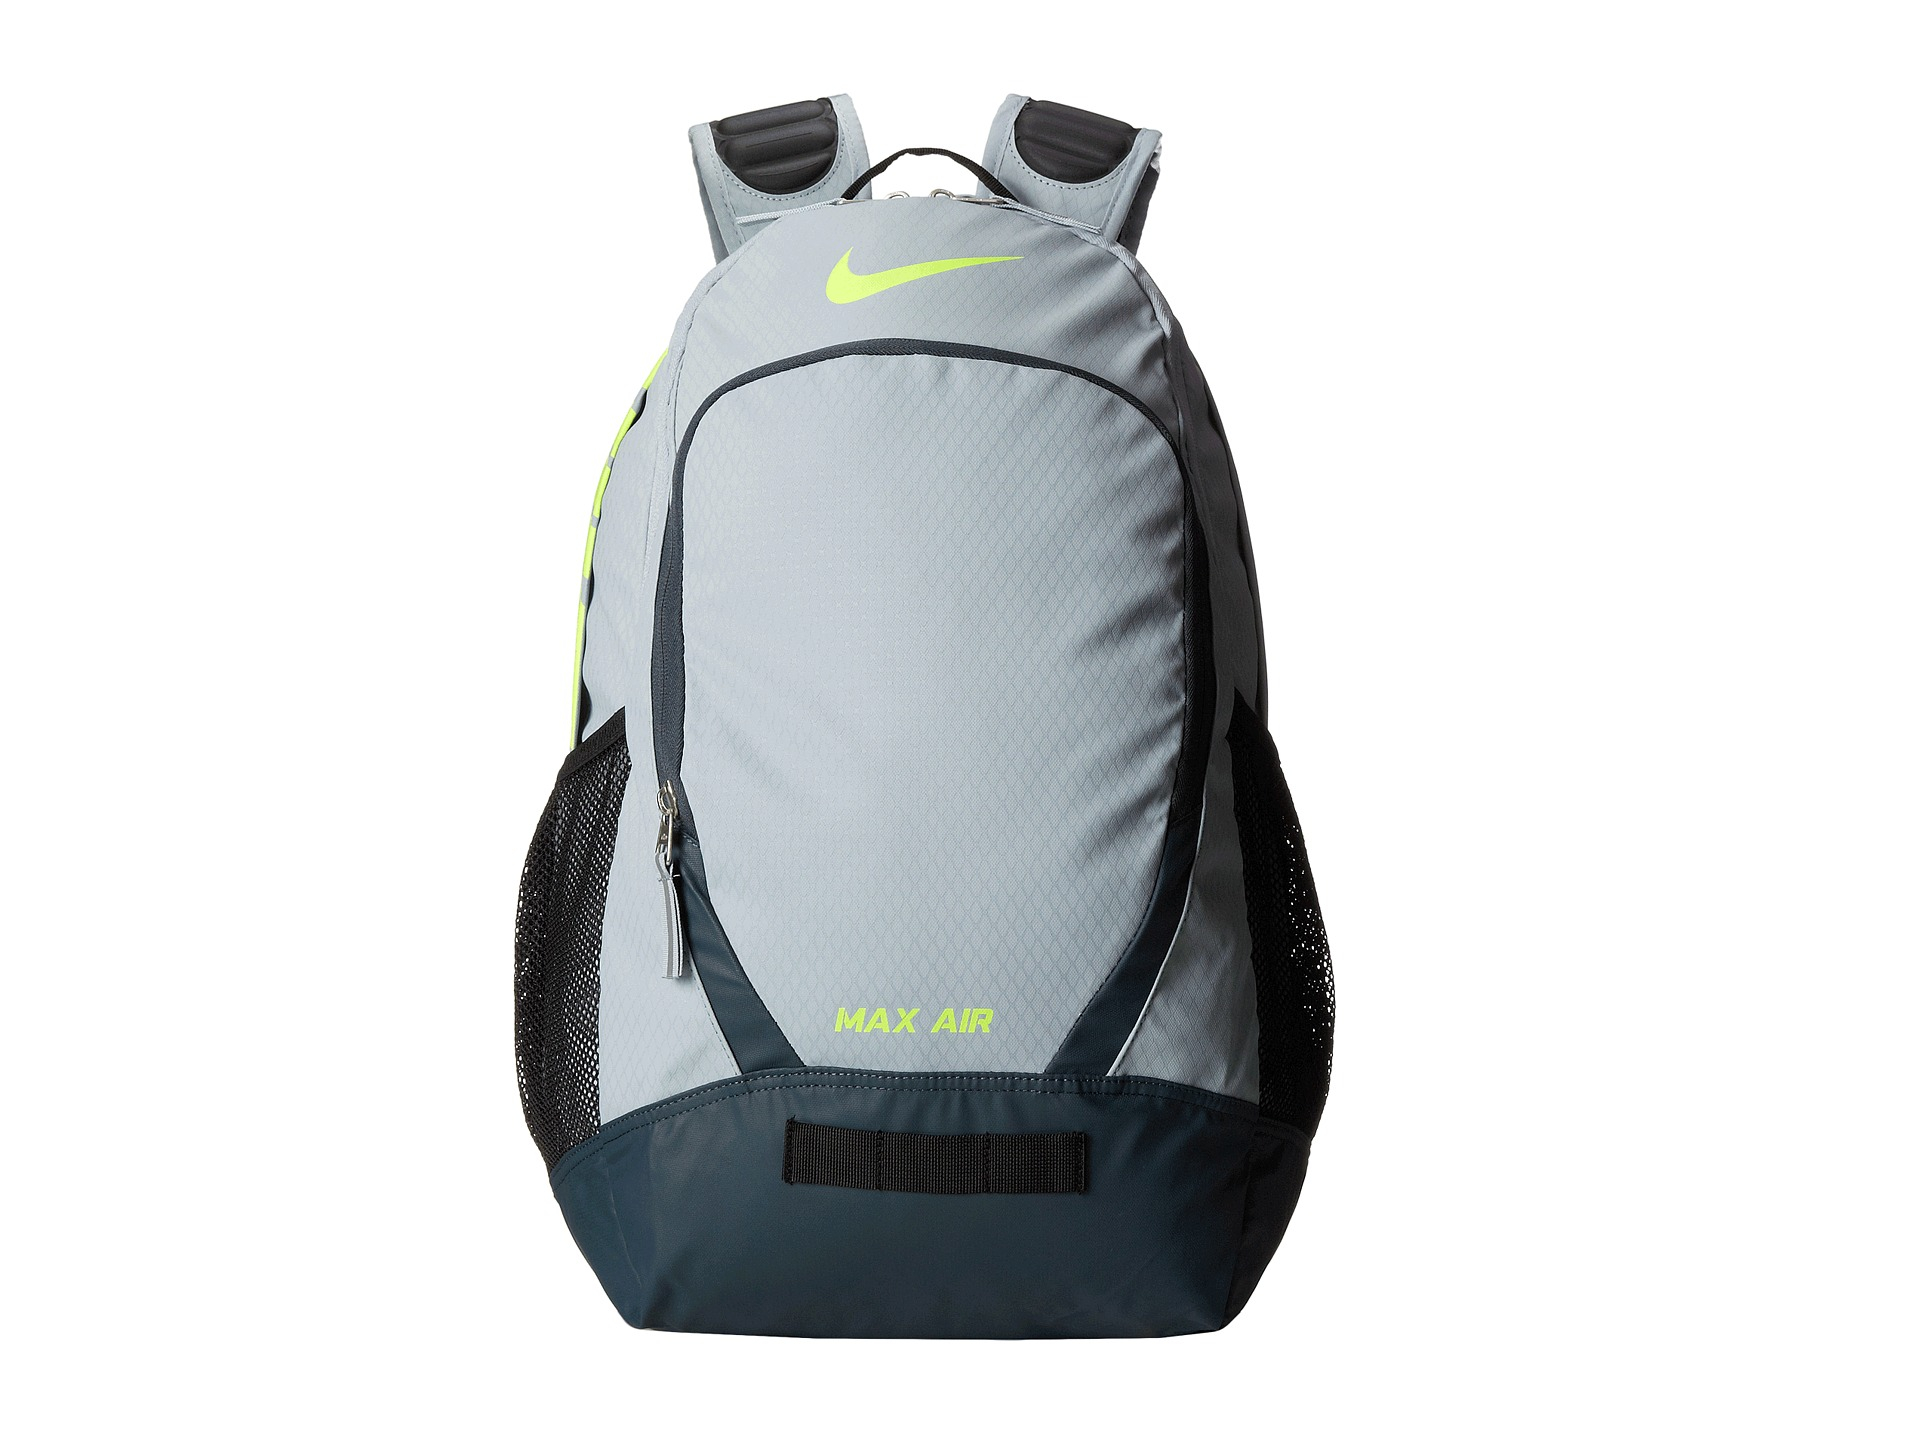 3f1bd1859a Lyst - Nike Team Training Max Air Large Backpack in Gray for Men